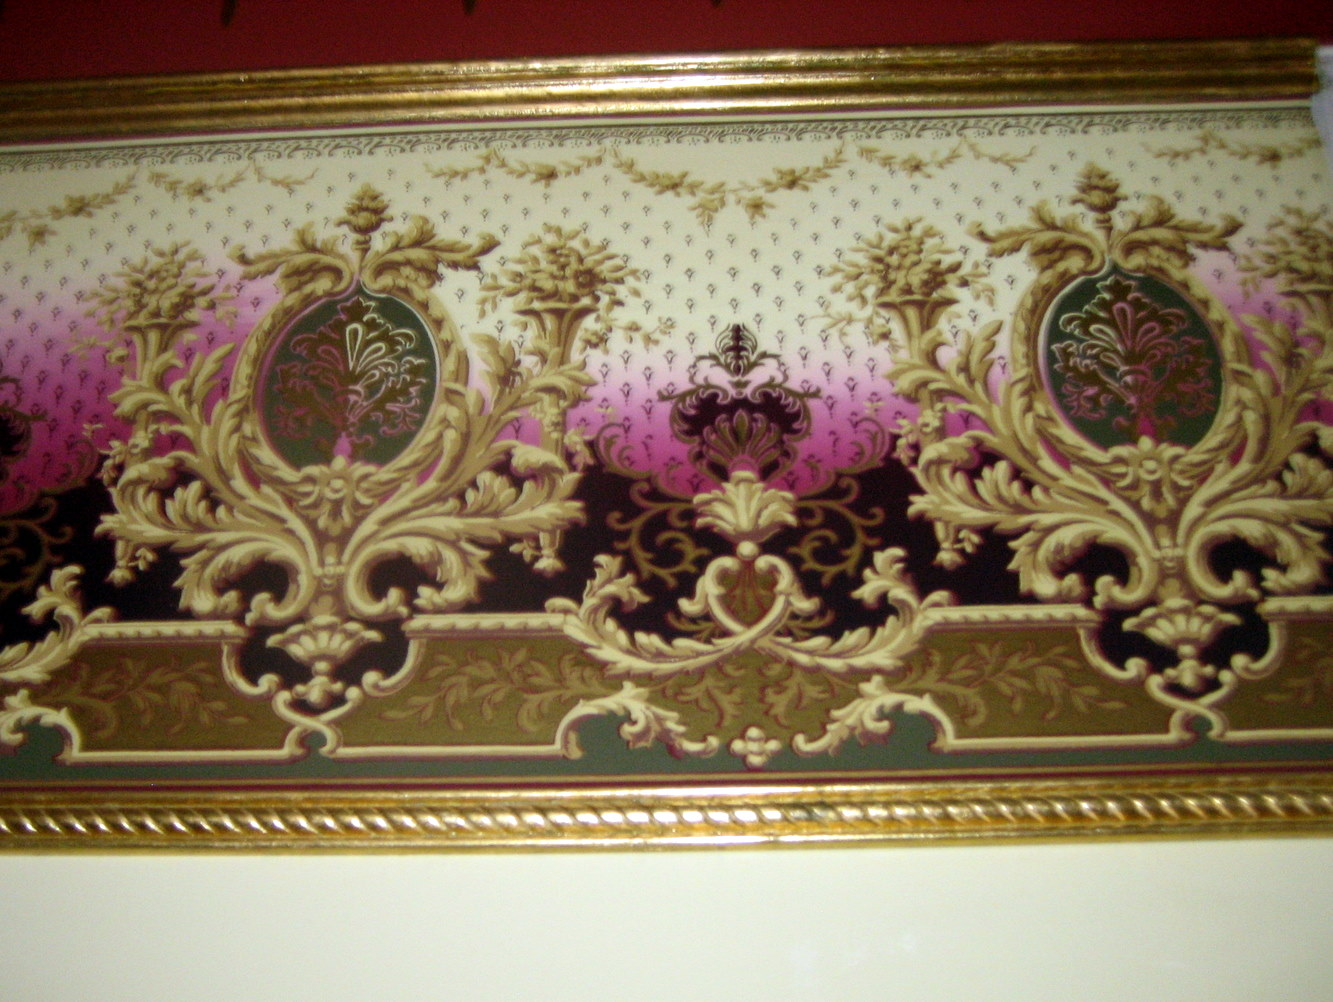 1860 Reproduction Wallpaper from France 1333x1002